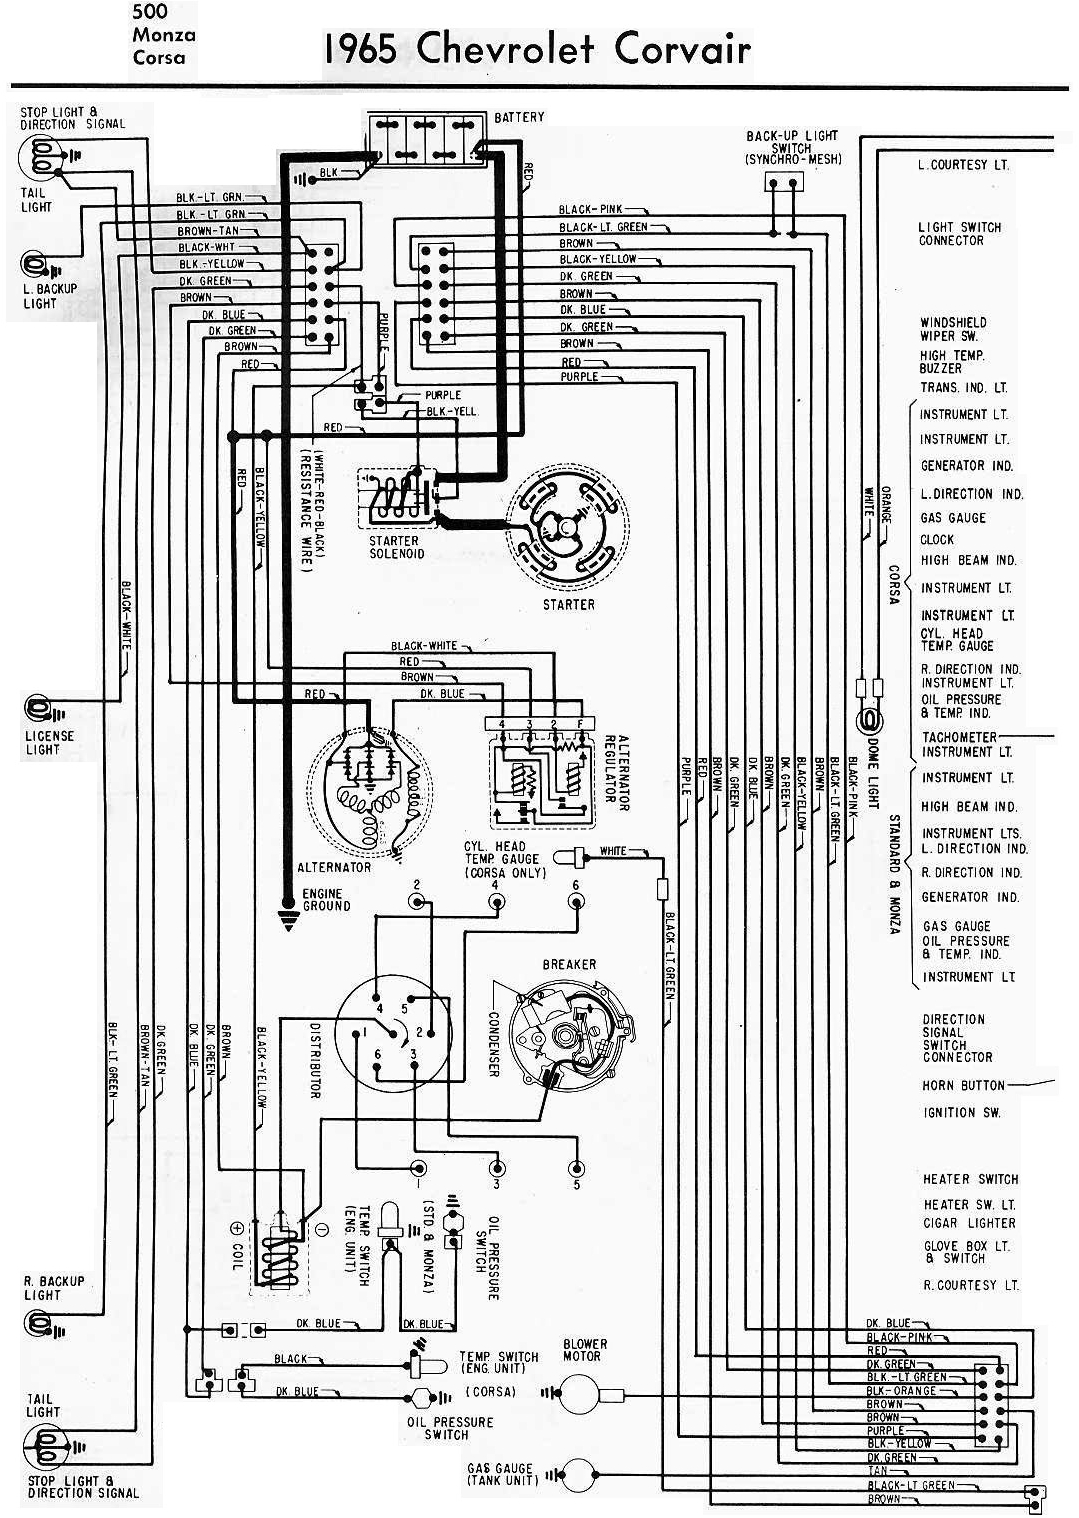 1965 chevrolet corvair electrical wiring diagram all about 1961 Corvair Wiring Diagram 1965 corvair wiring diagram